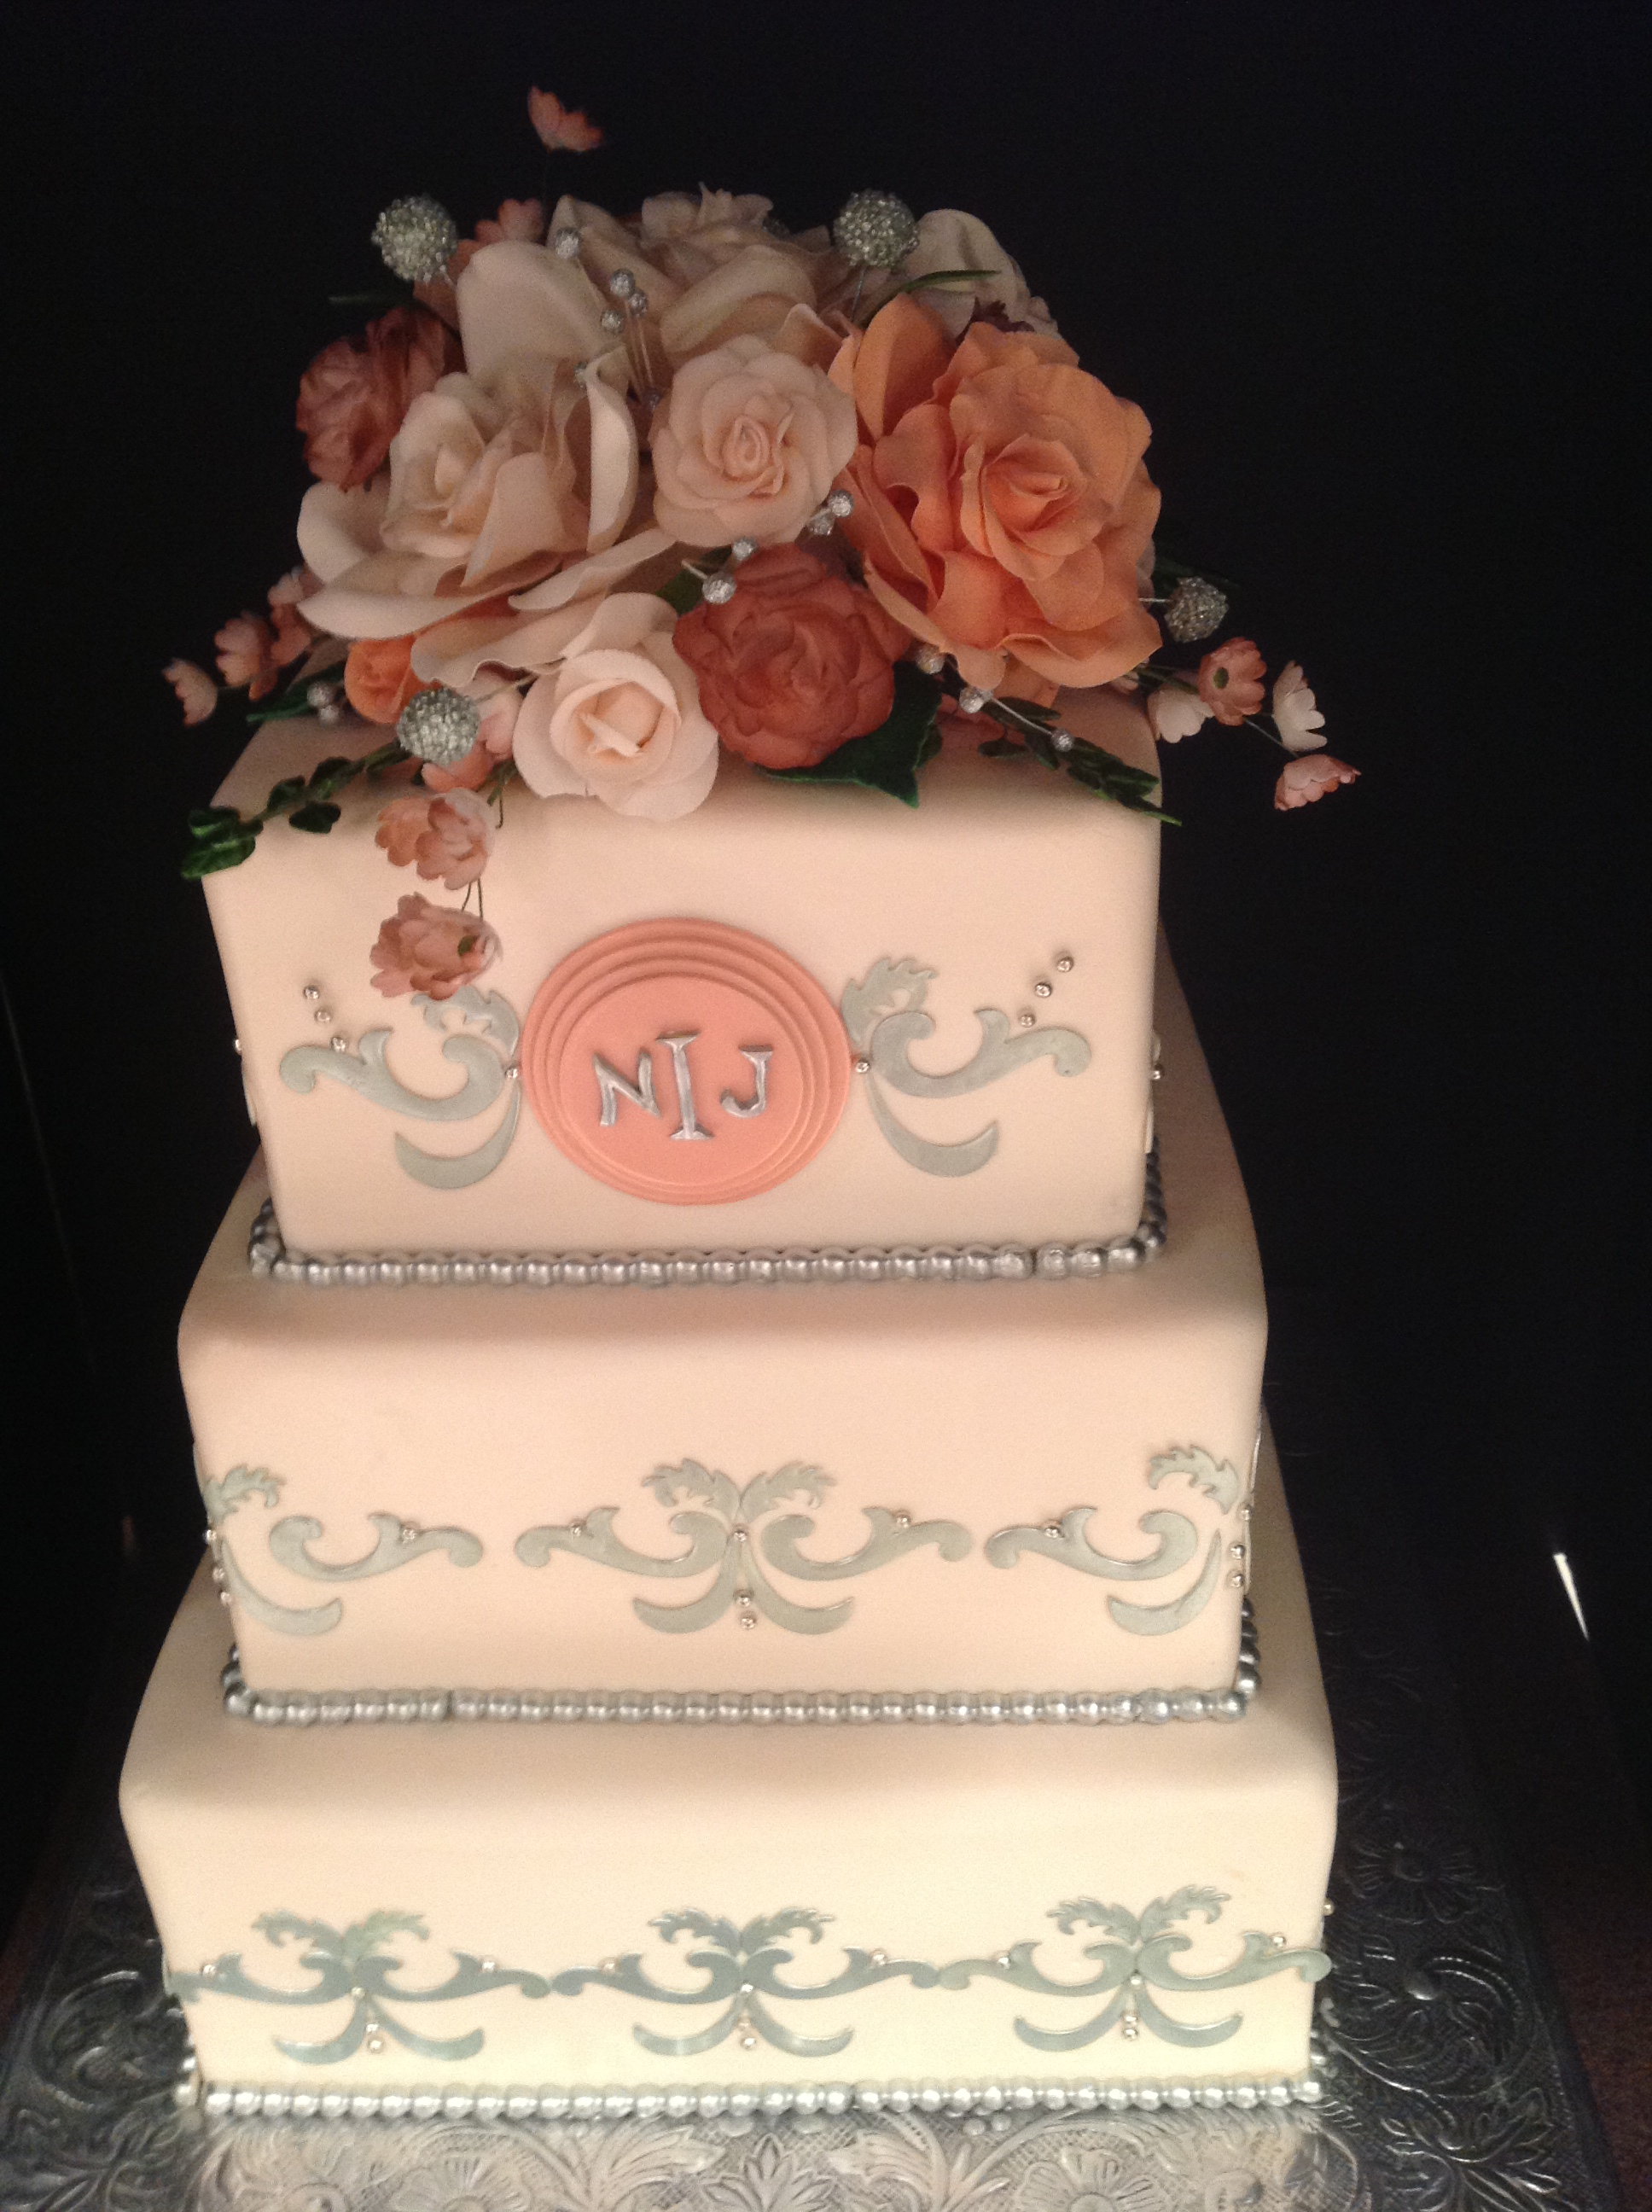 Cake Decor And More E U : M&T Events Custom Cakes Bakery   Custom Wedding and Events ...